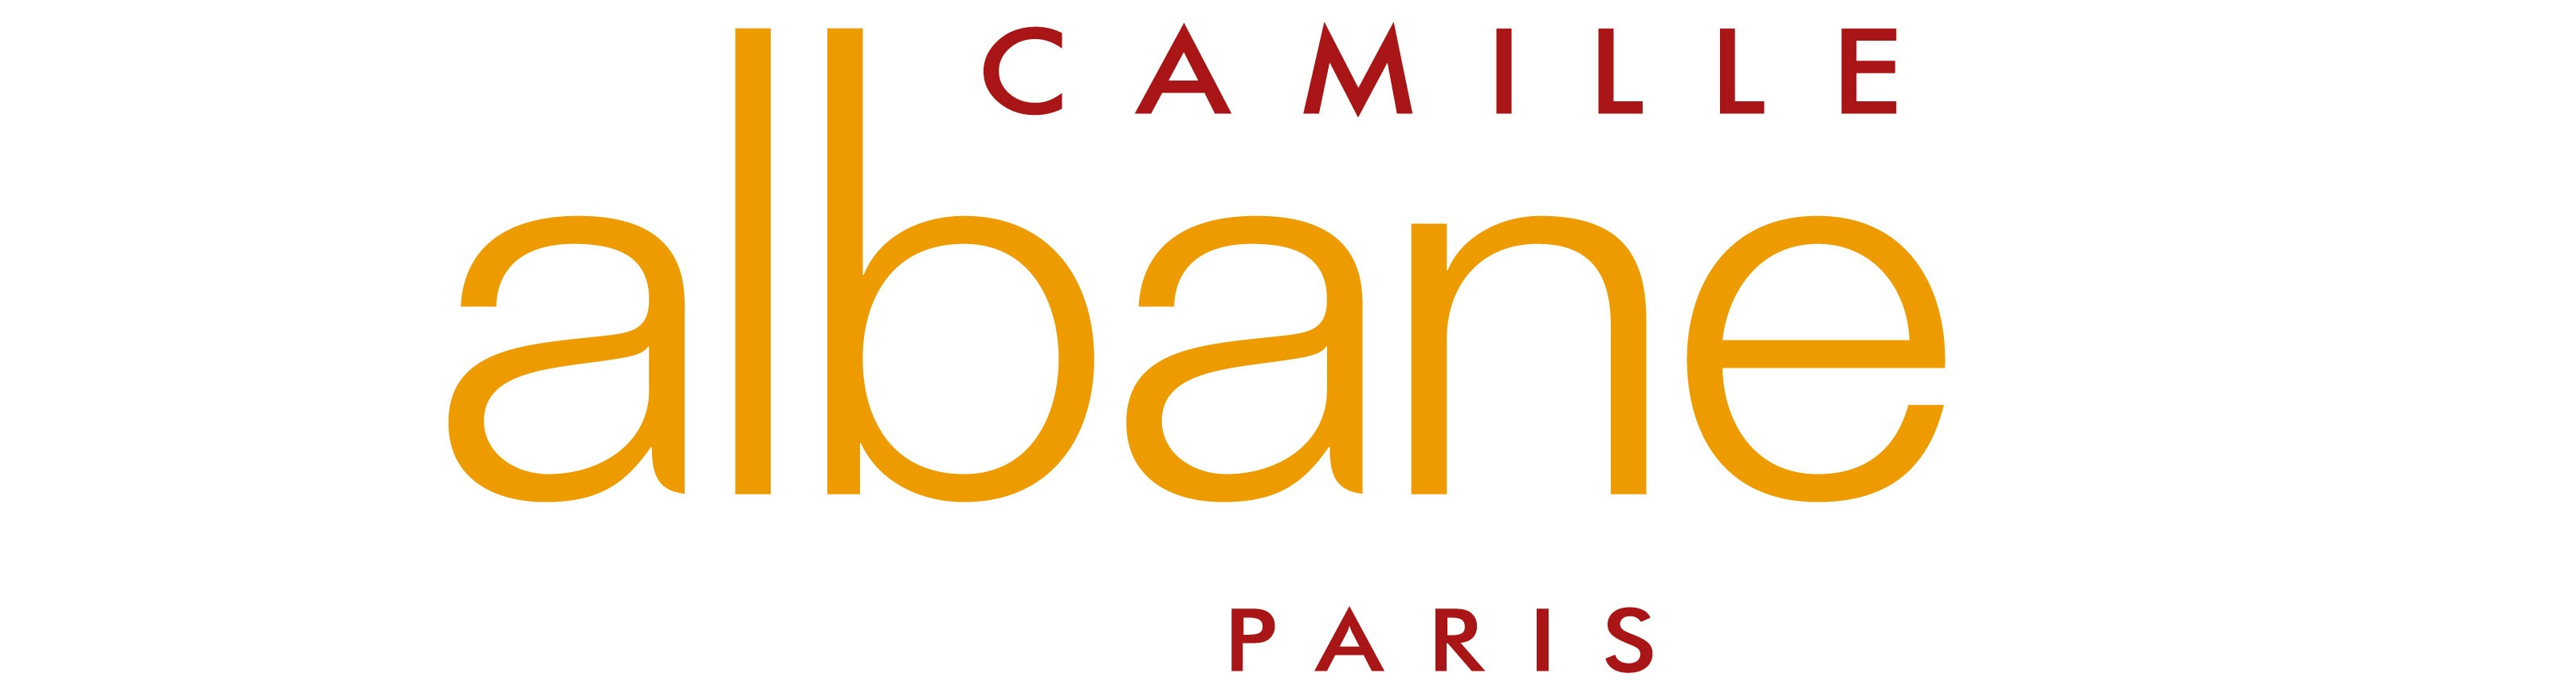 Camille Albane Coiffeur Manager Chez Camille Albane H F